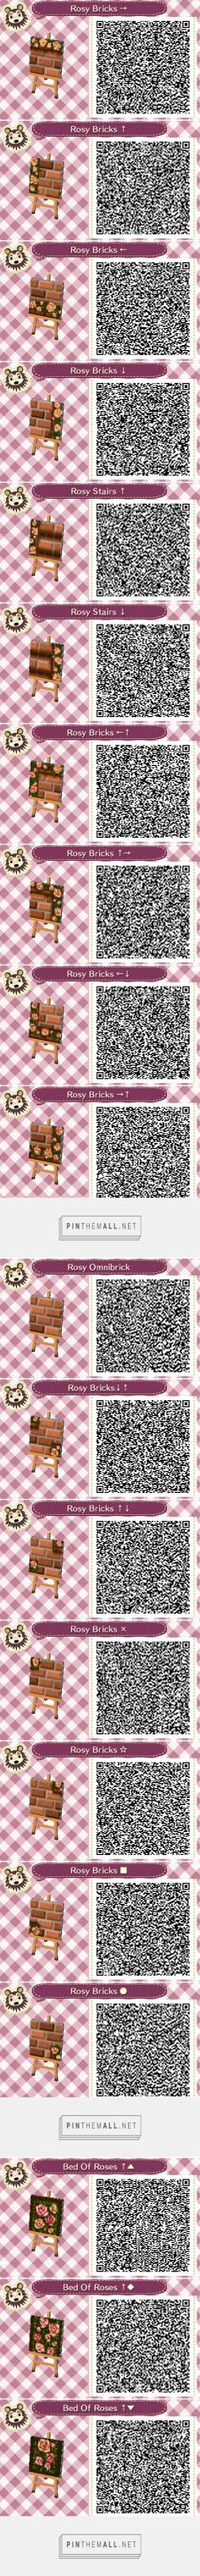 COMPLETE Rosy brown bricks path